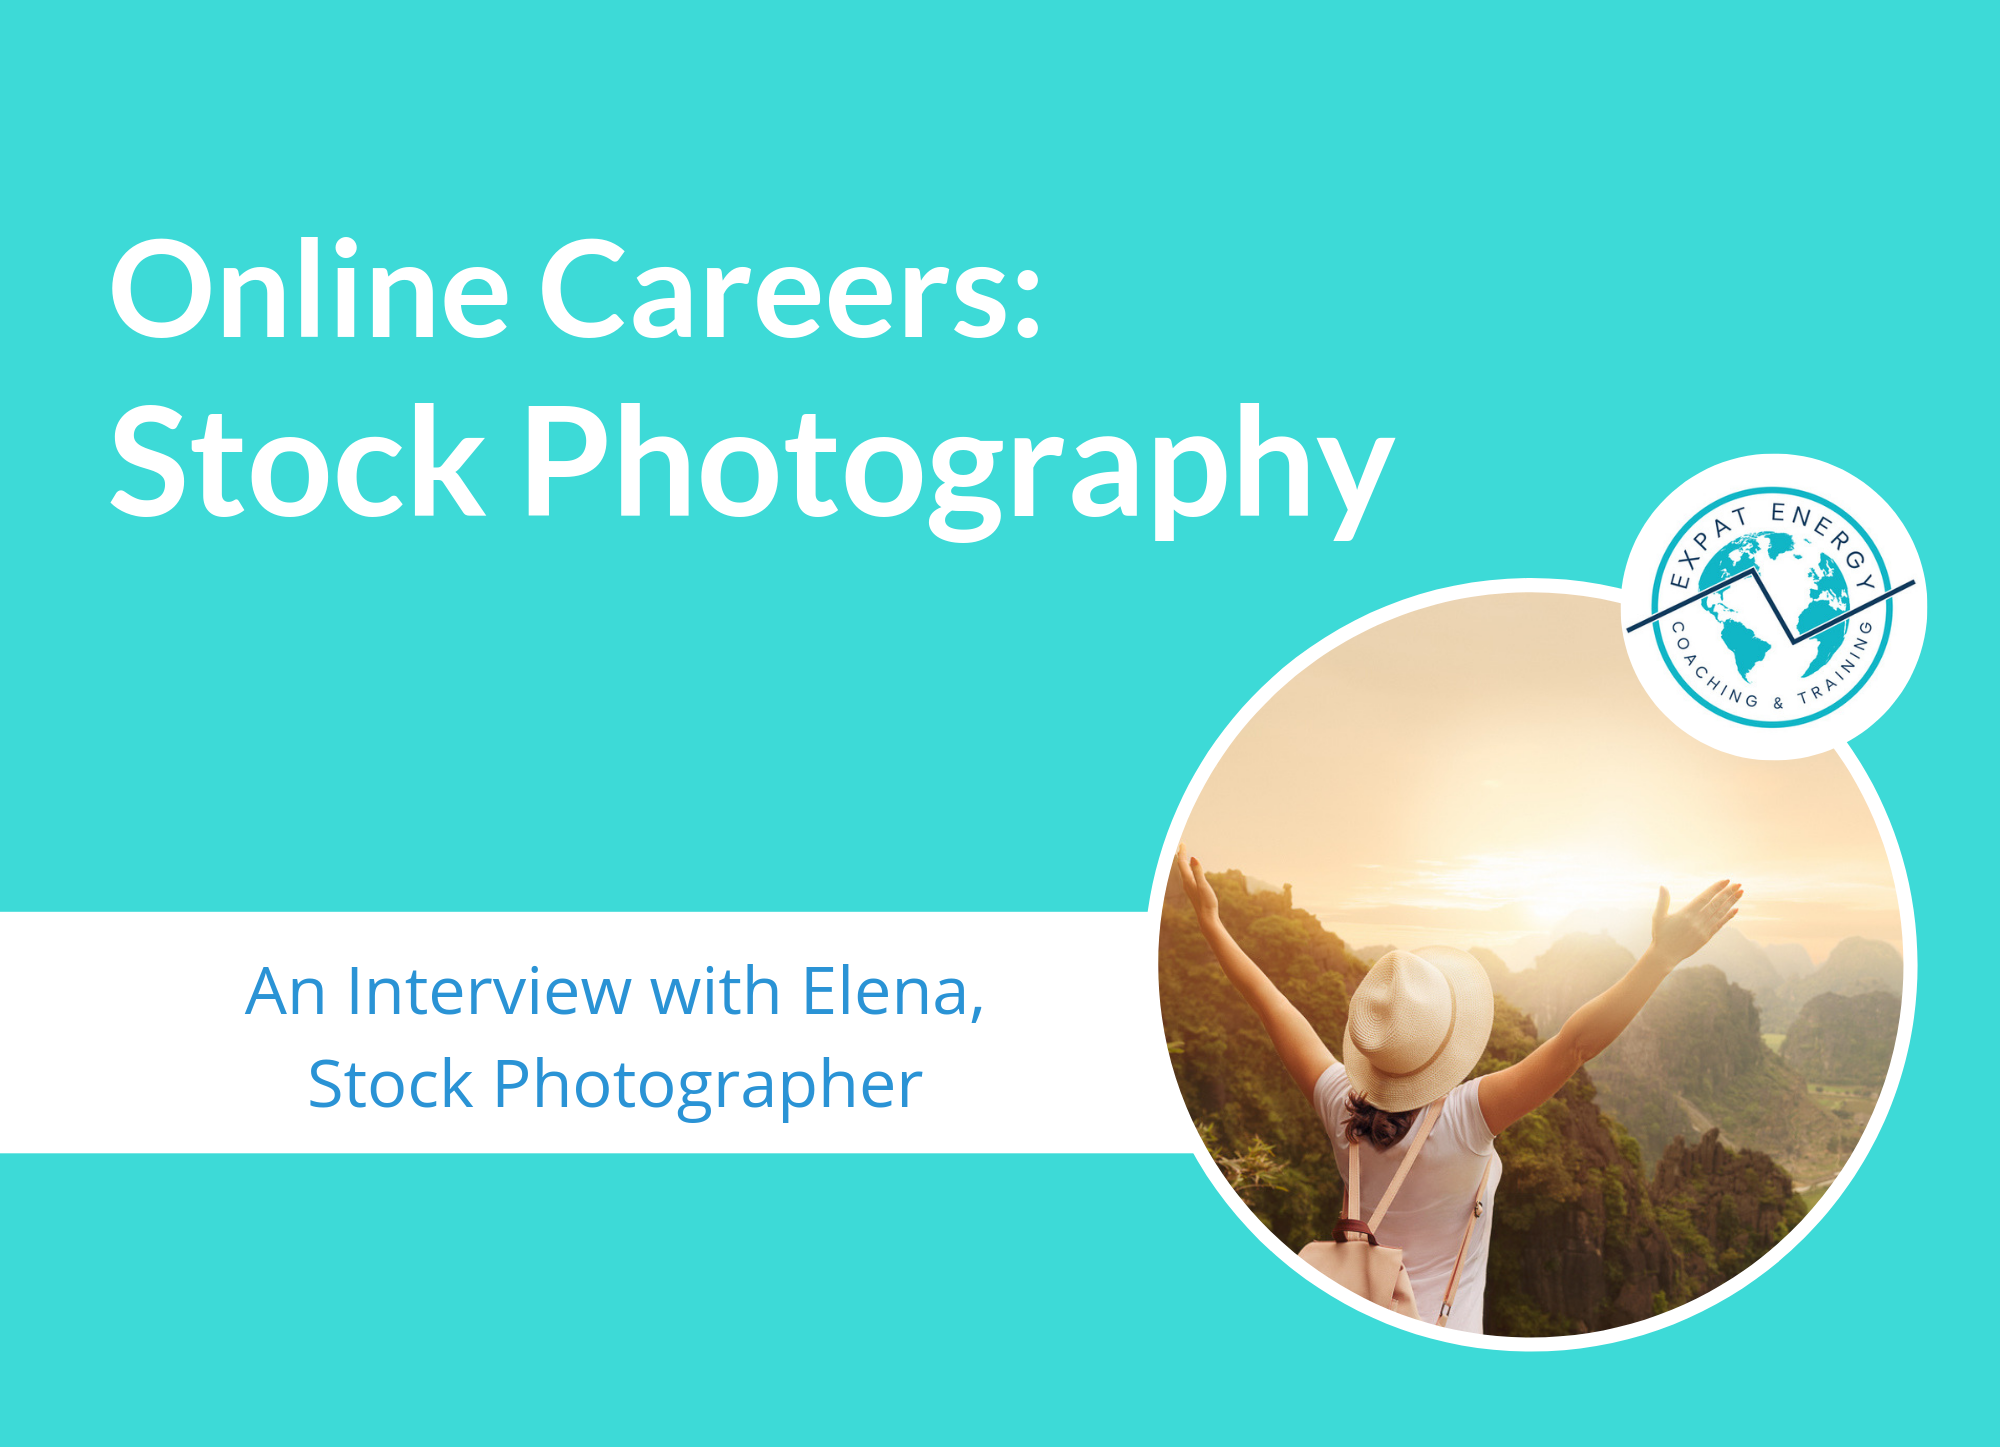 Expat Energy - An Interview with Elena, Stock Photographer